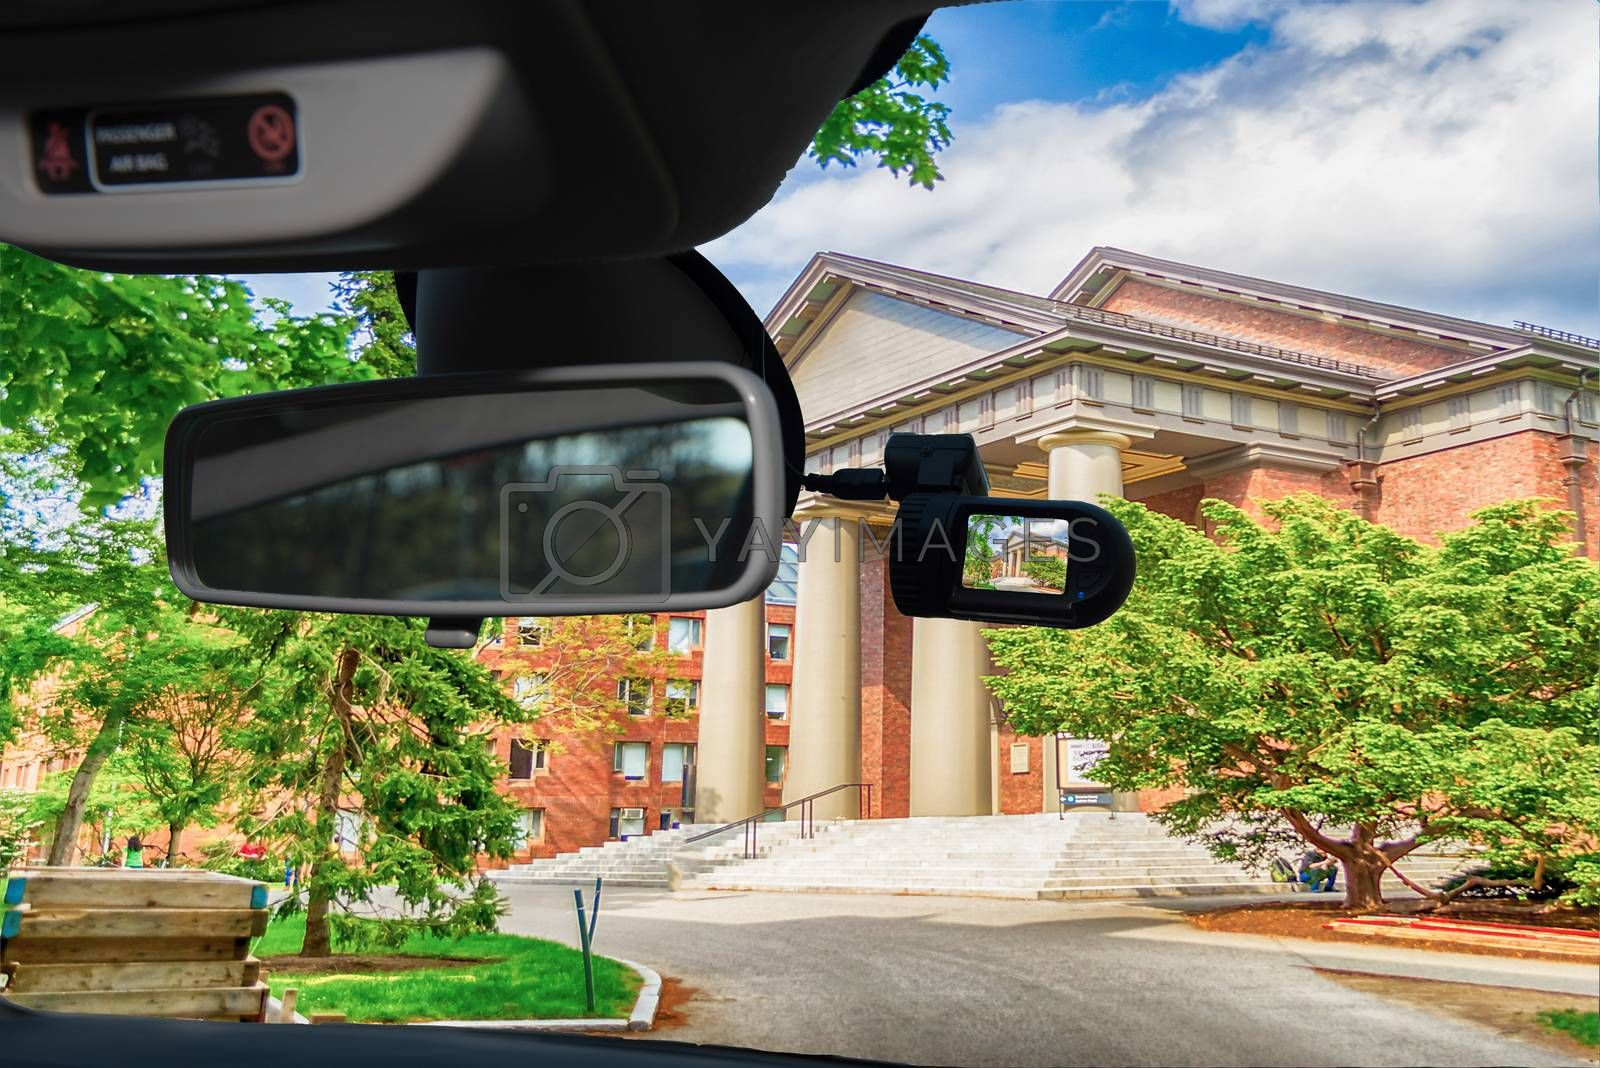 Looking through a dashcam car camera installed on a windshield with view of the Harvard University Campus, Cambridge, USA